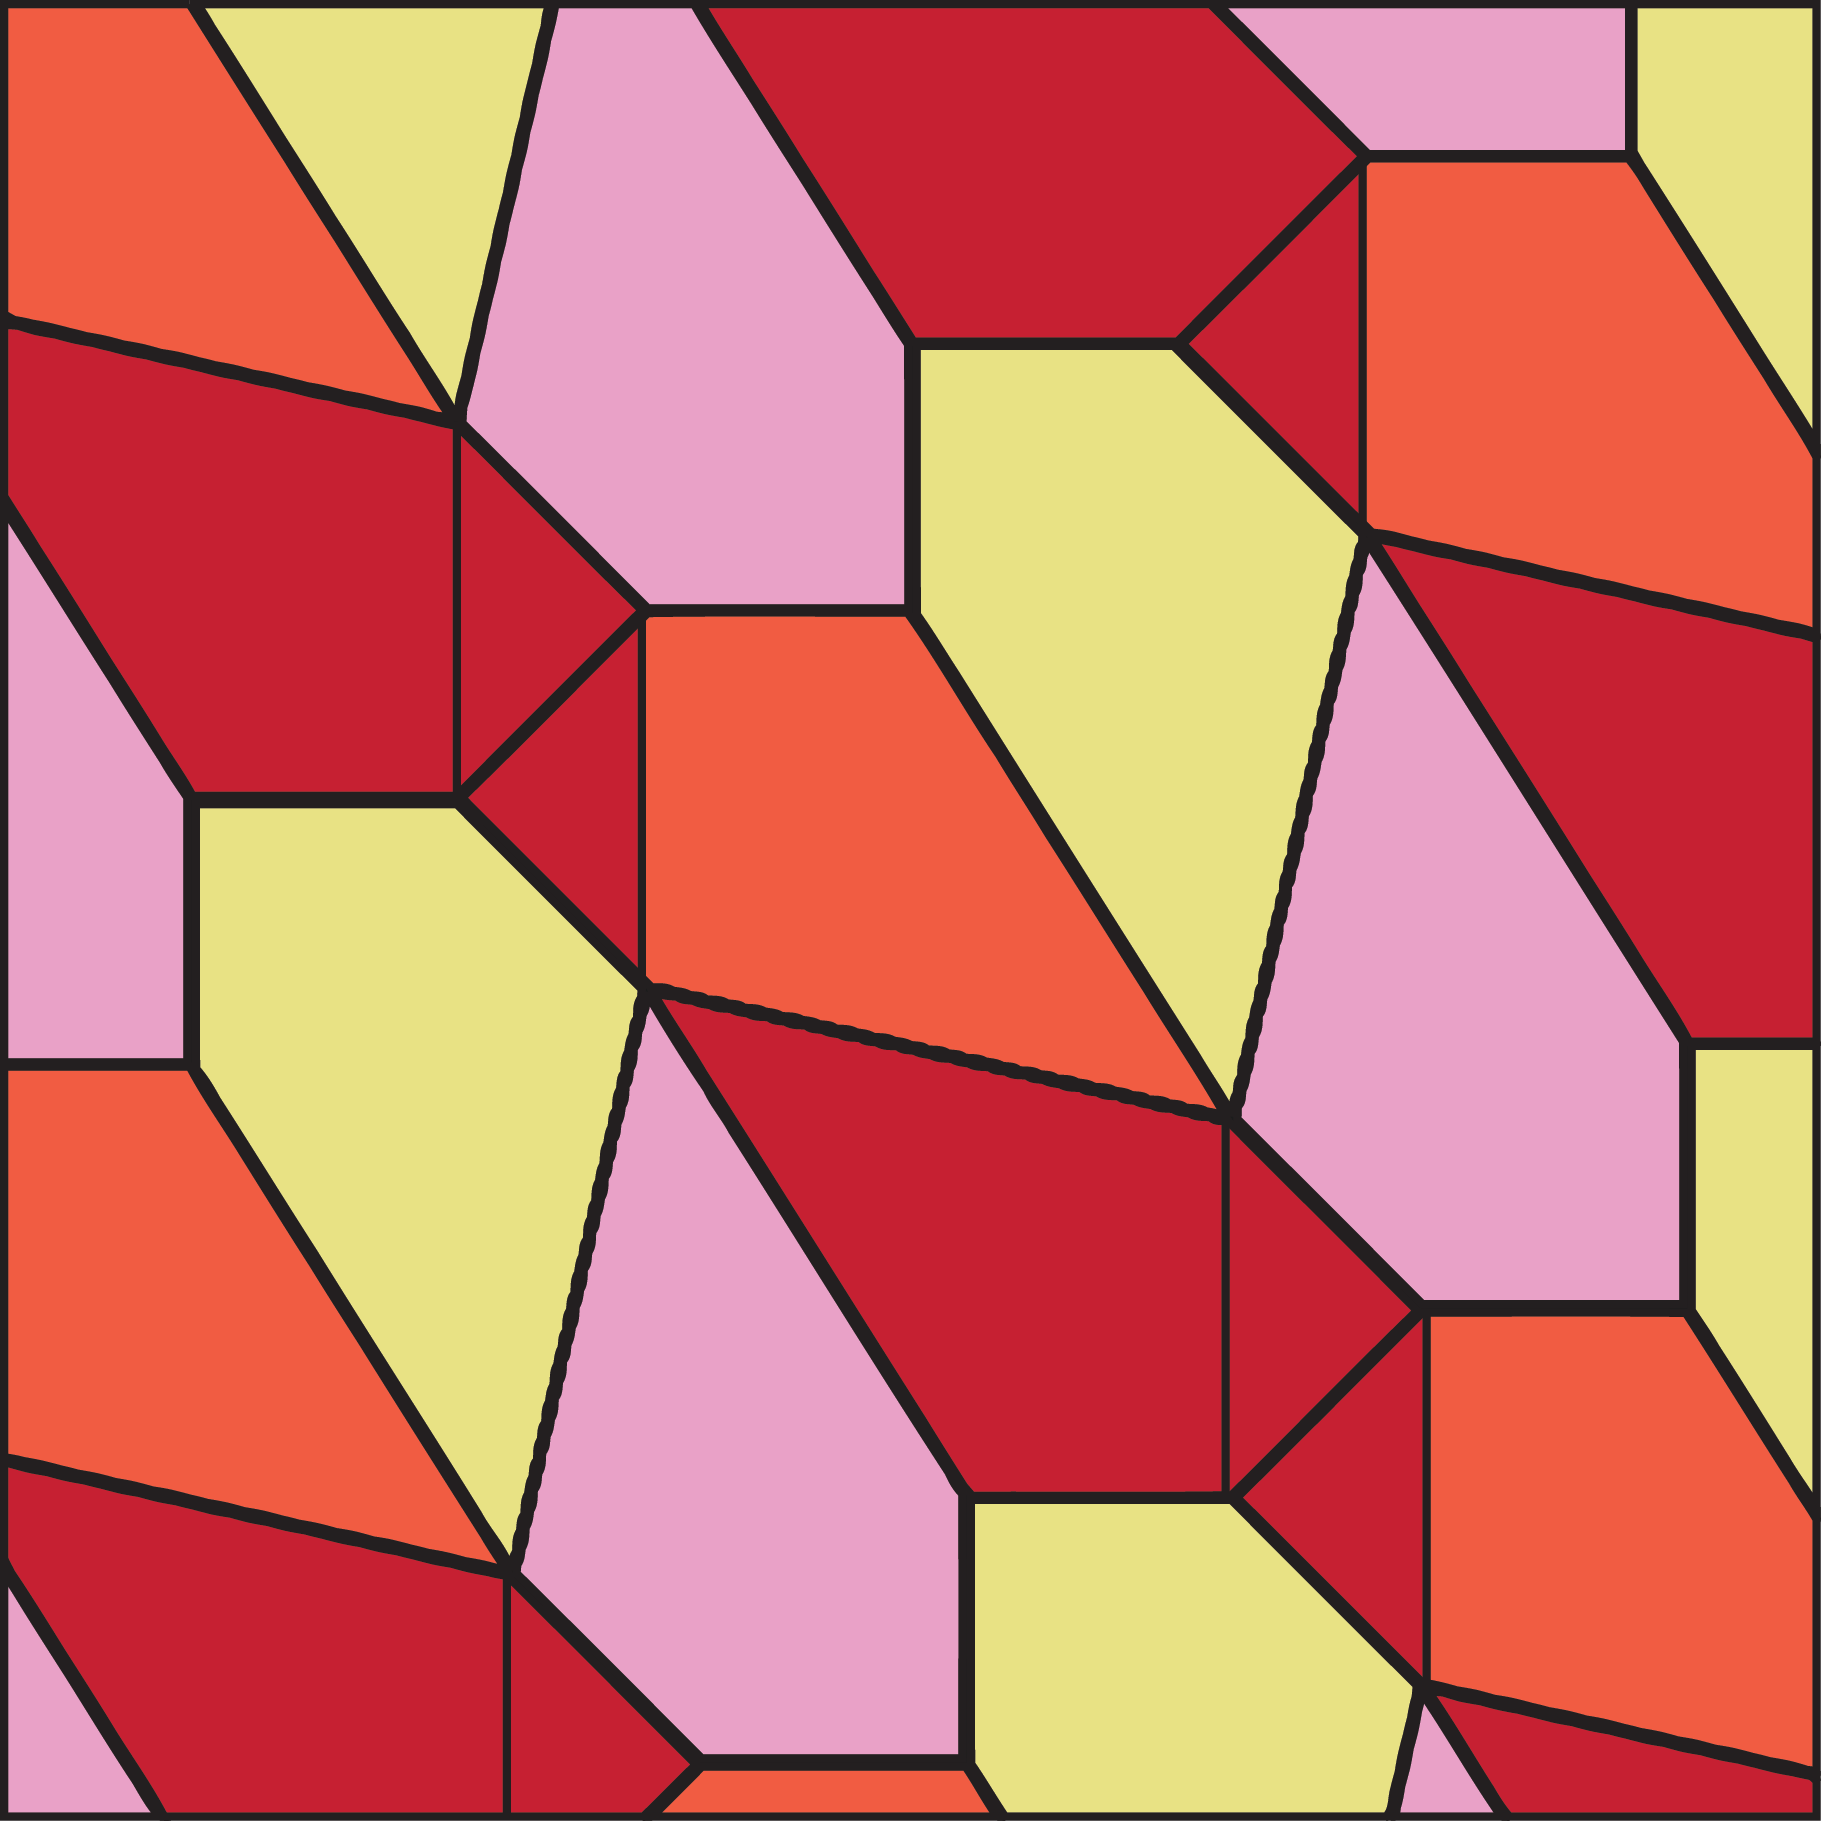 Another Made Of Irregular Polygon Shapes